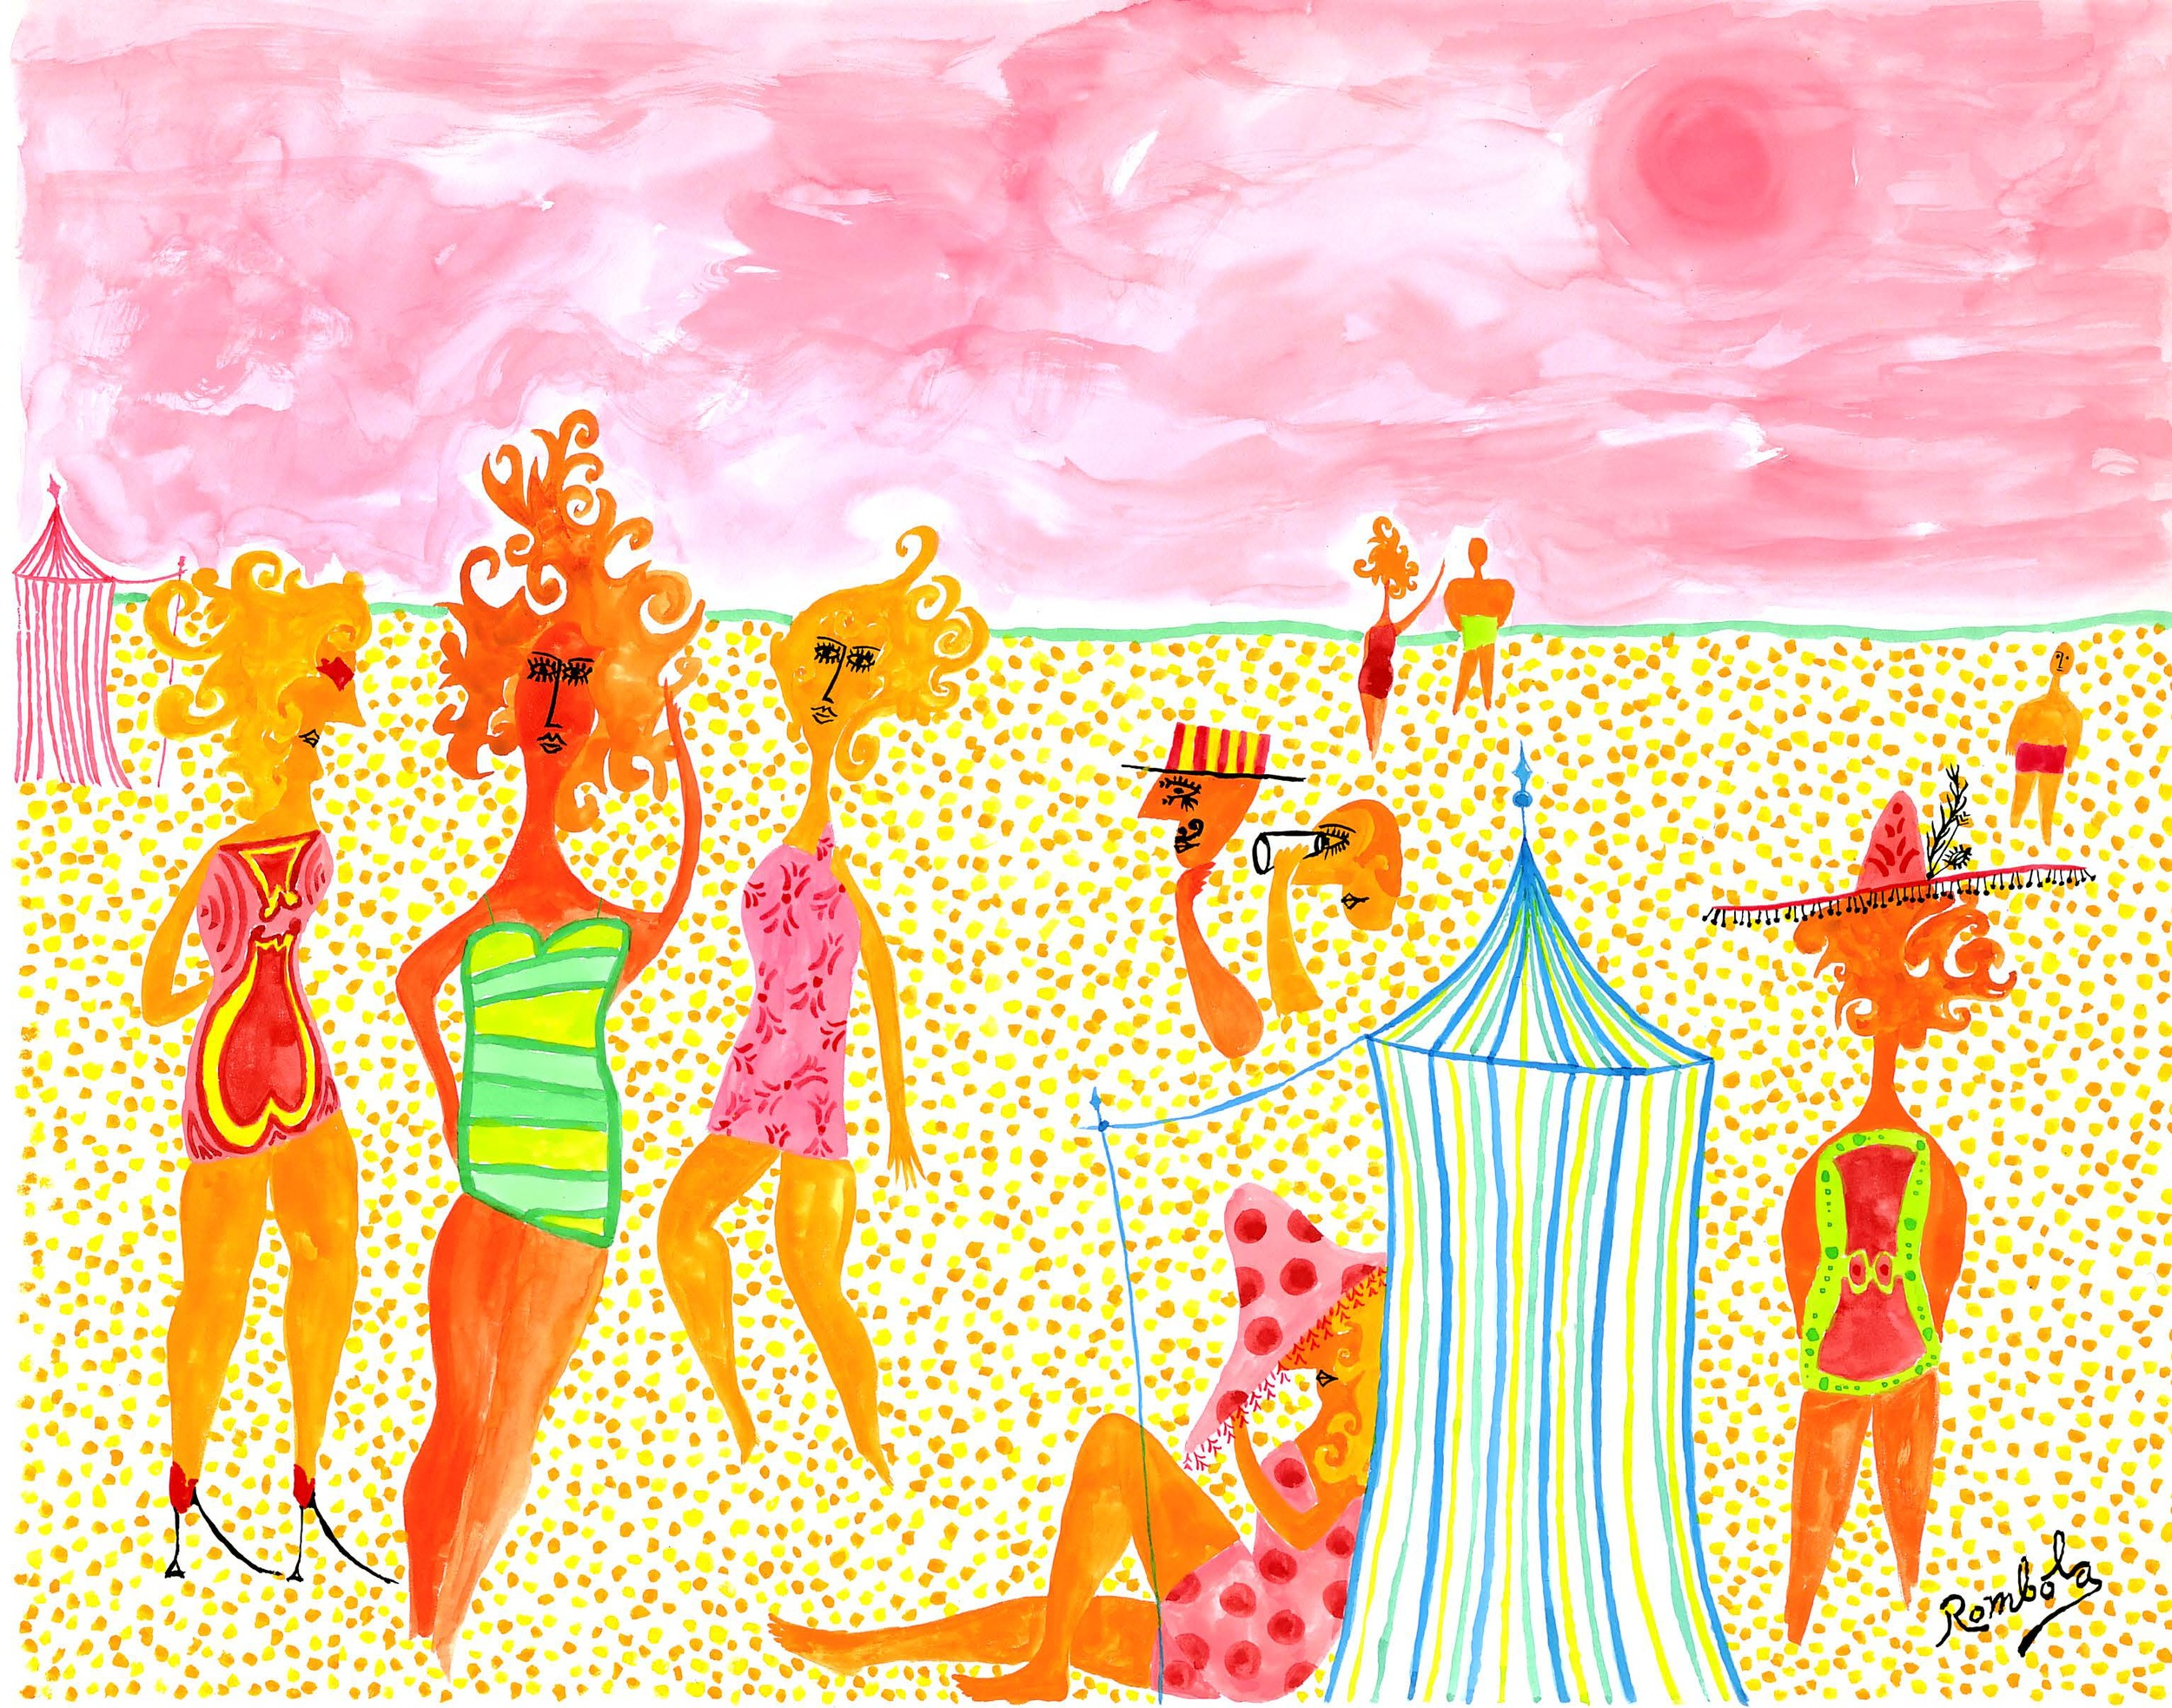 The Crowded Beach    Gouache on paper 1960